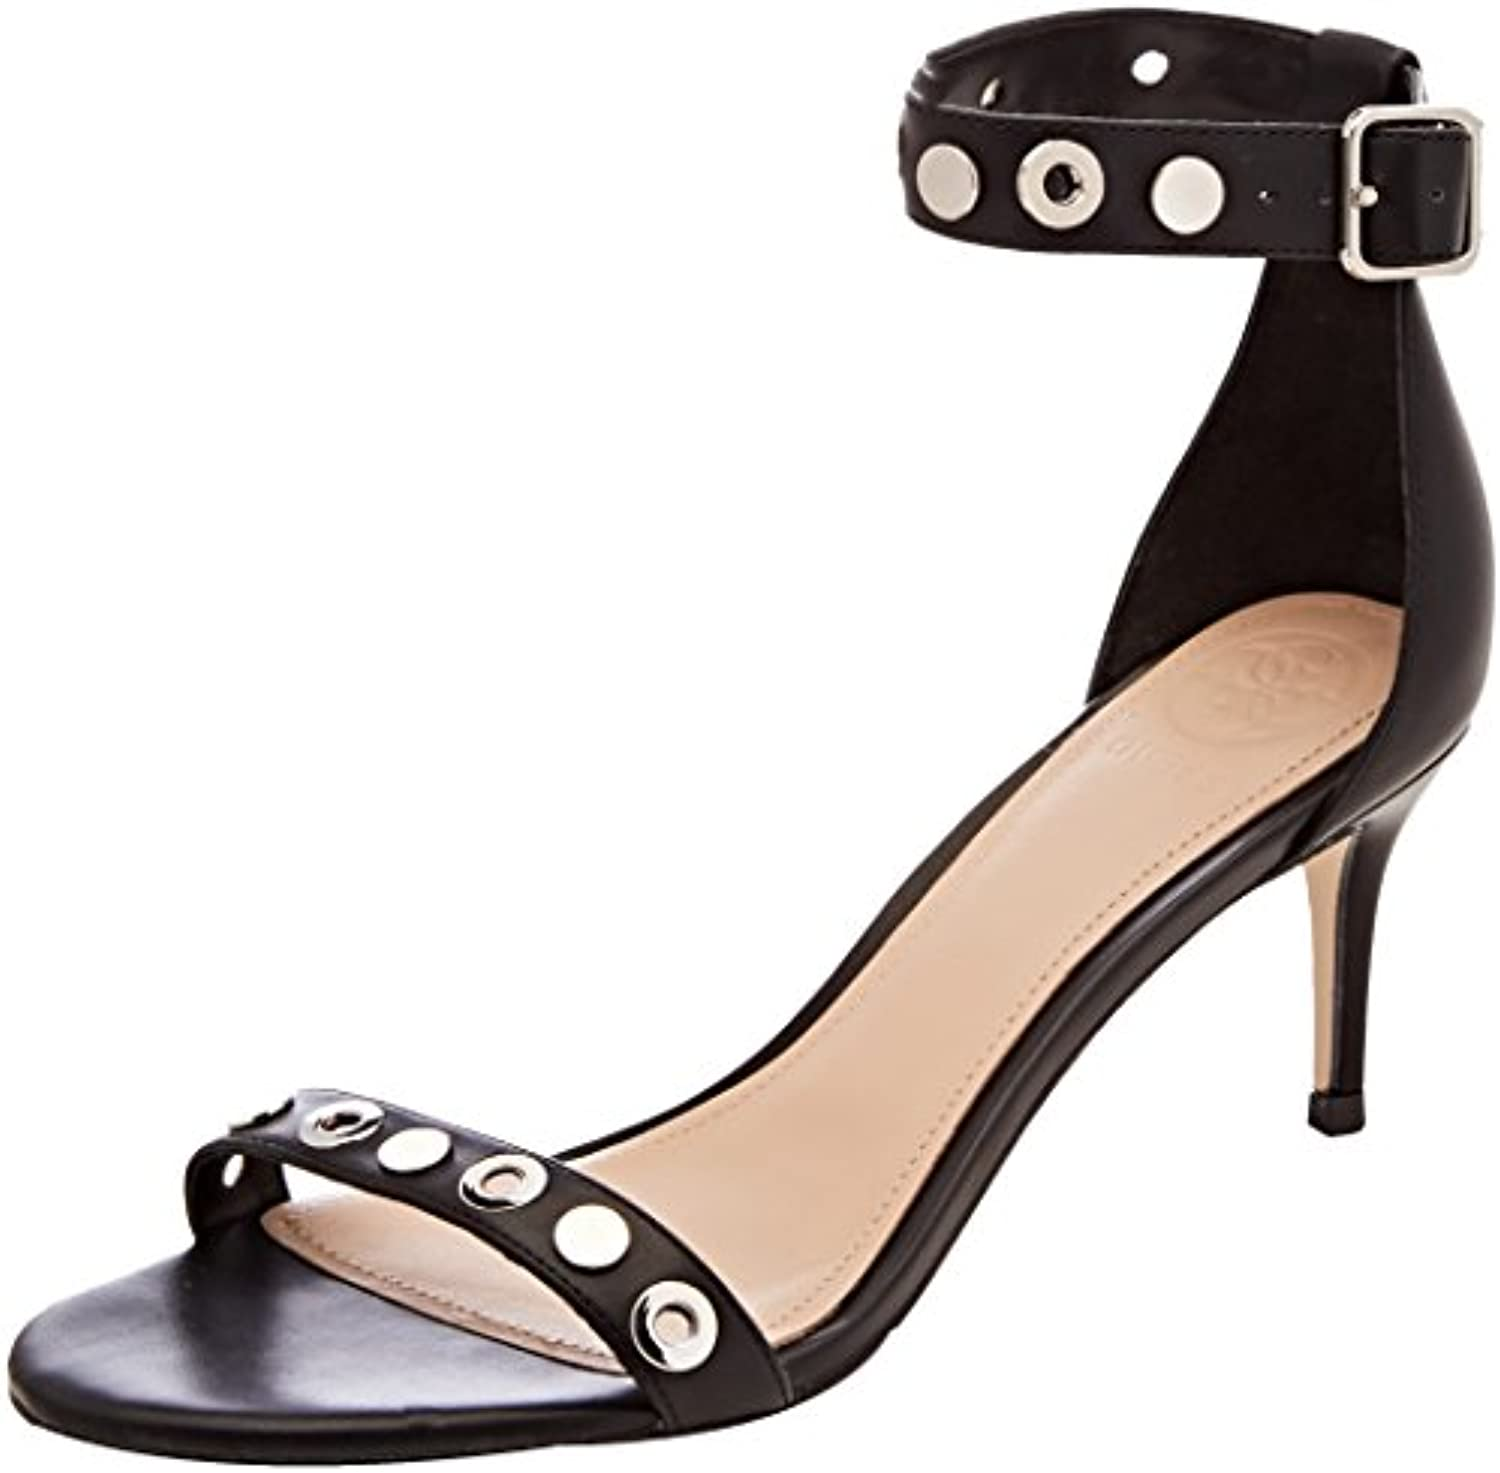 Guess Damen Footwear Dress Sandal Riemchen Pumps Schwarz